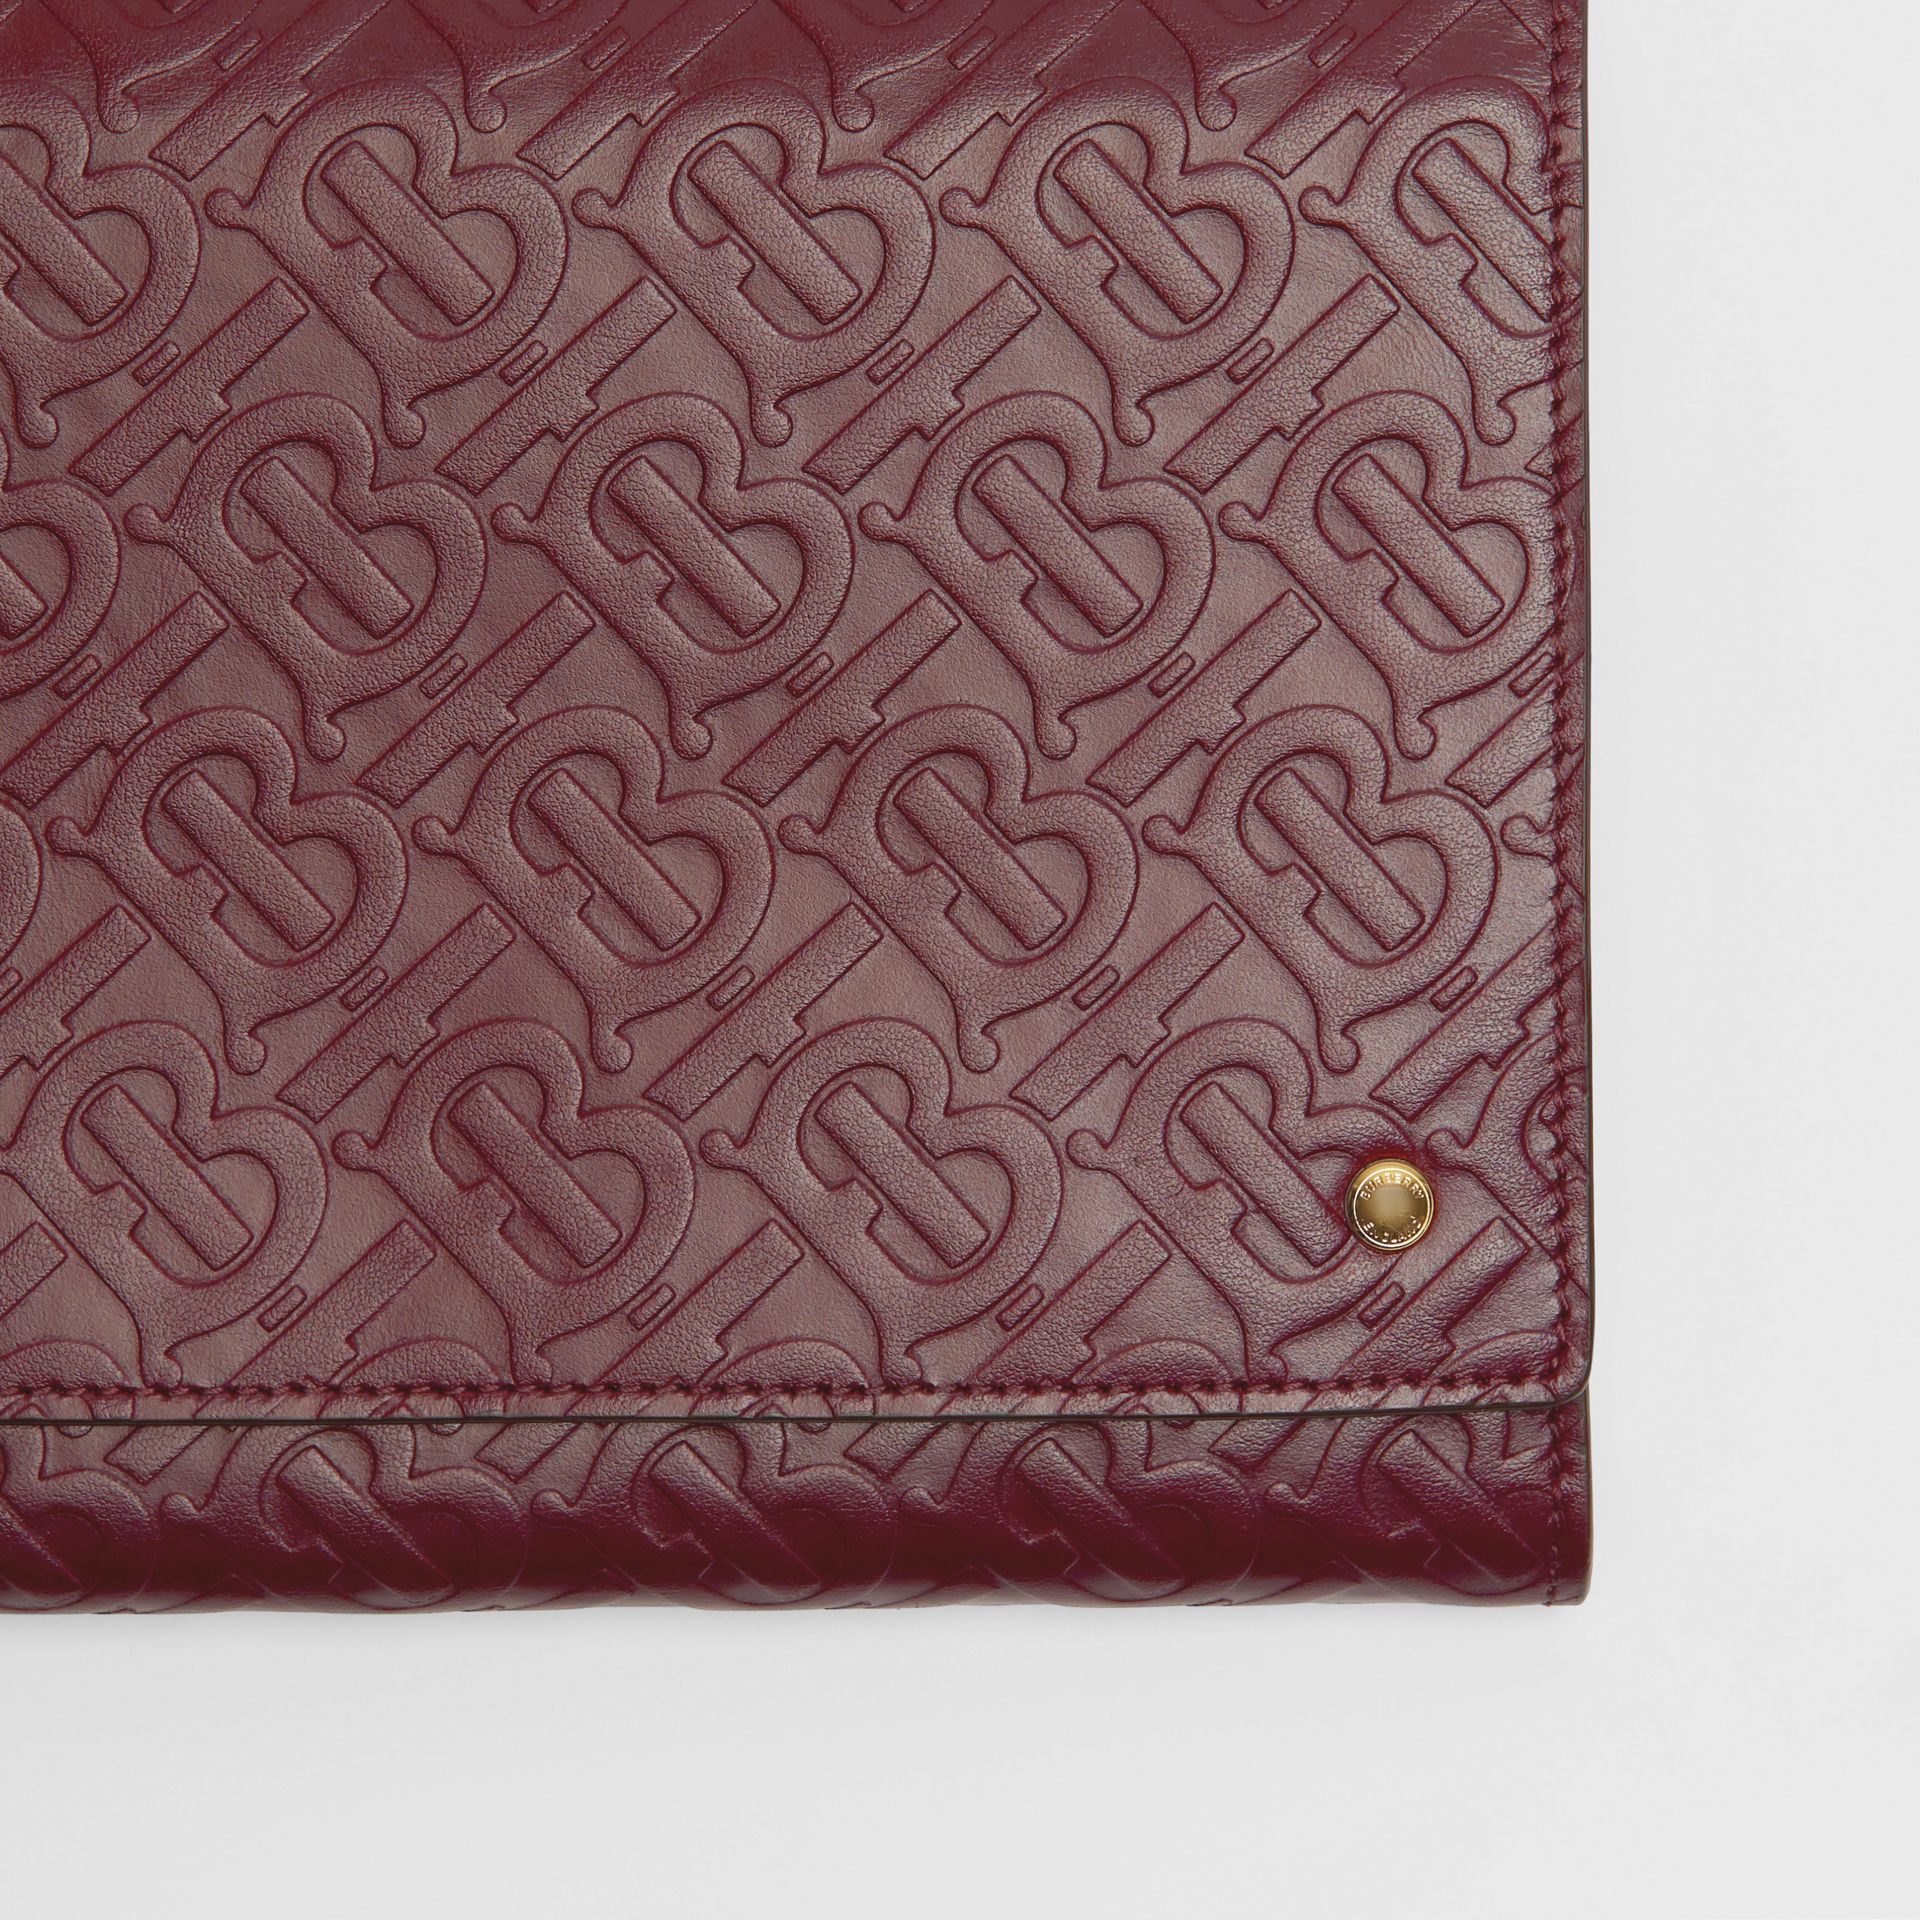 Sac en cuir Monogram avec sangle amovible (Oxblood) - Femme | Burberry Canada - photo de la galerie 1